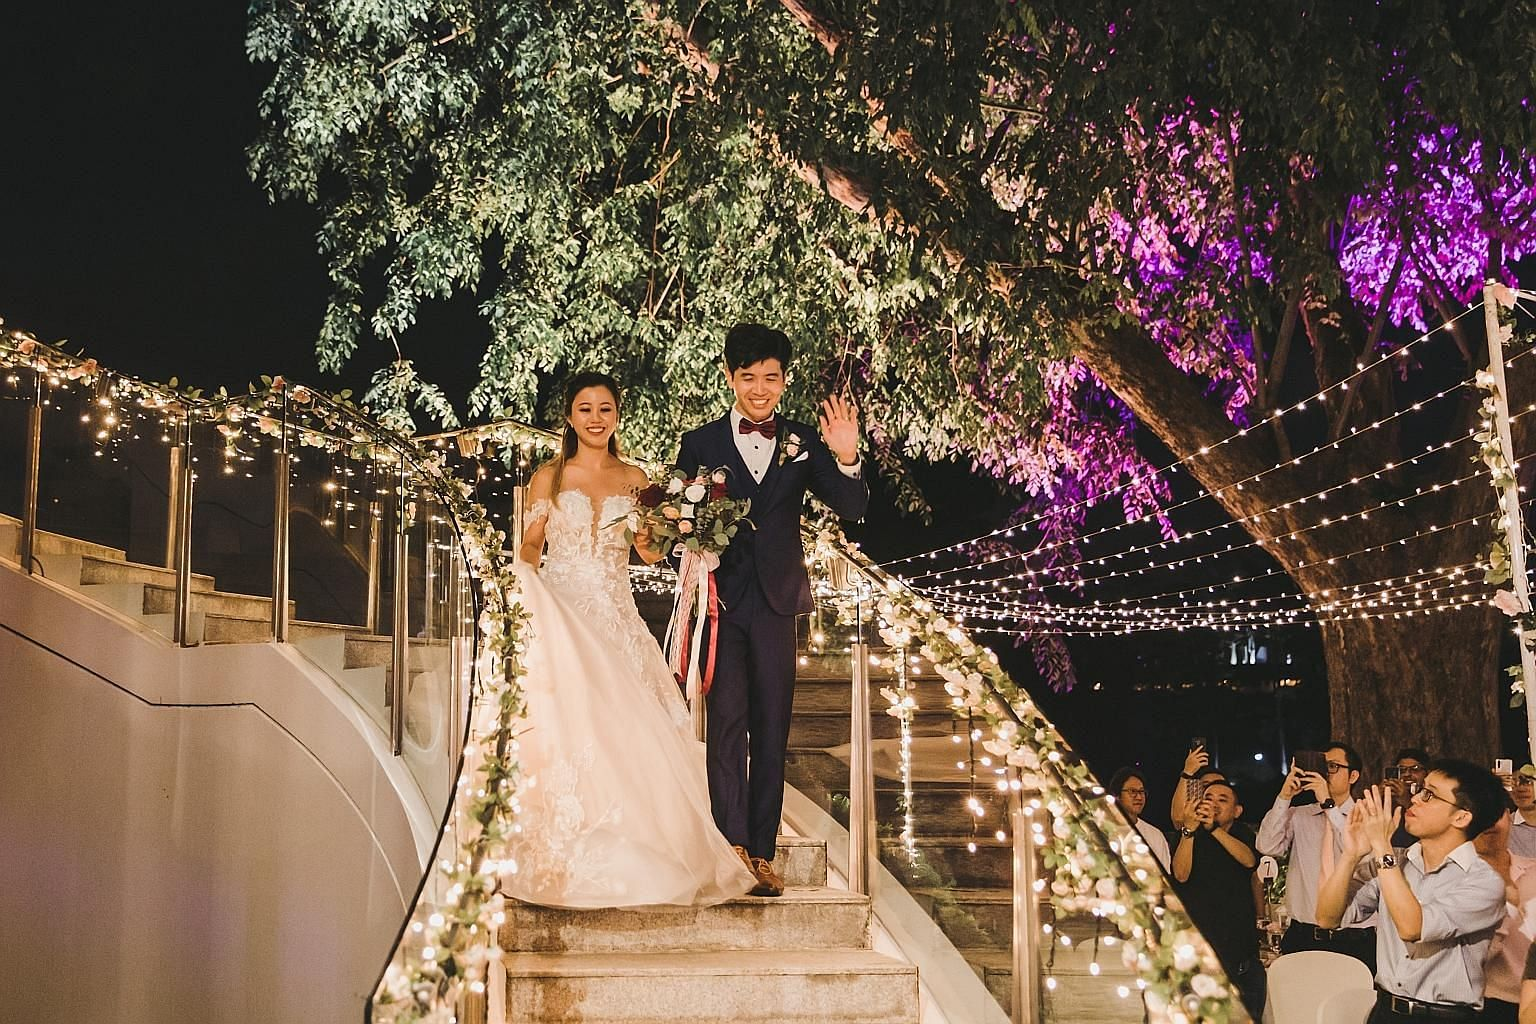 Ms Jessica Lai and Mr Phua Jun Wen at their wedding reception at the Arbora restaurant on Mount Faber in July last year. The couple met through dating app Paktor, which uses AI to pick up on users' preferences. The app likely caught on early that Ms